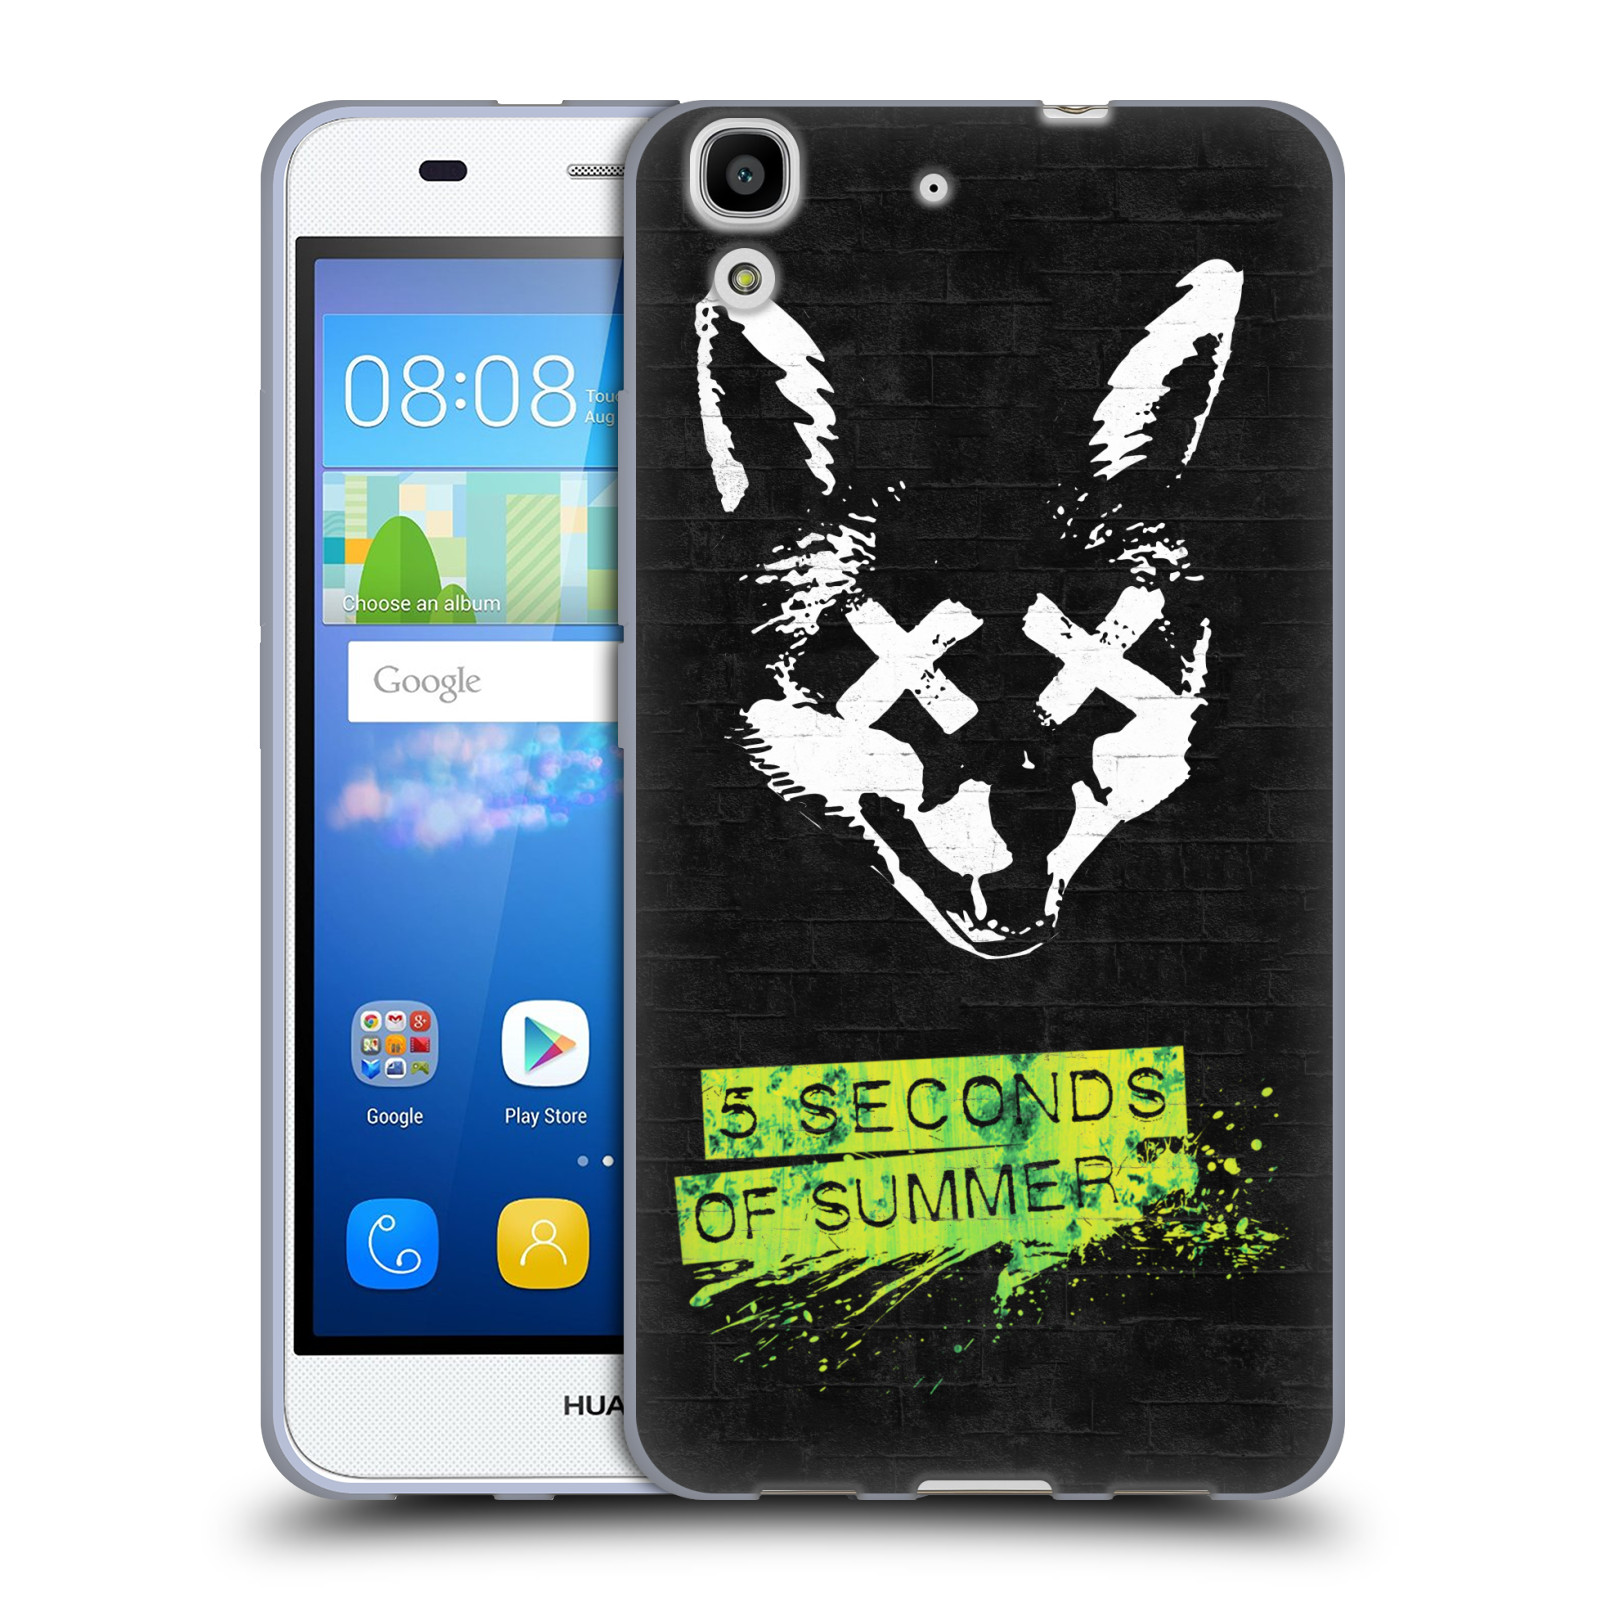 Silikonové pouzdro na mobil Huawei Y6 HEAD CASE 5 Seconds of Summer - Fox